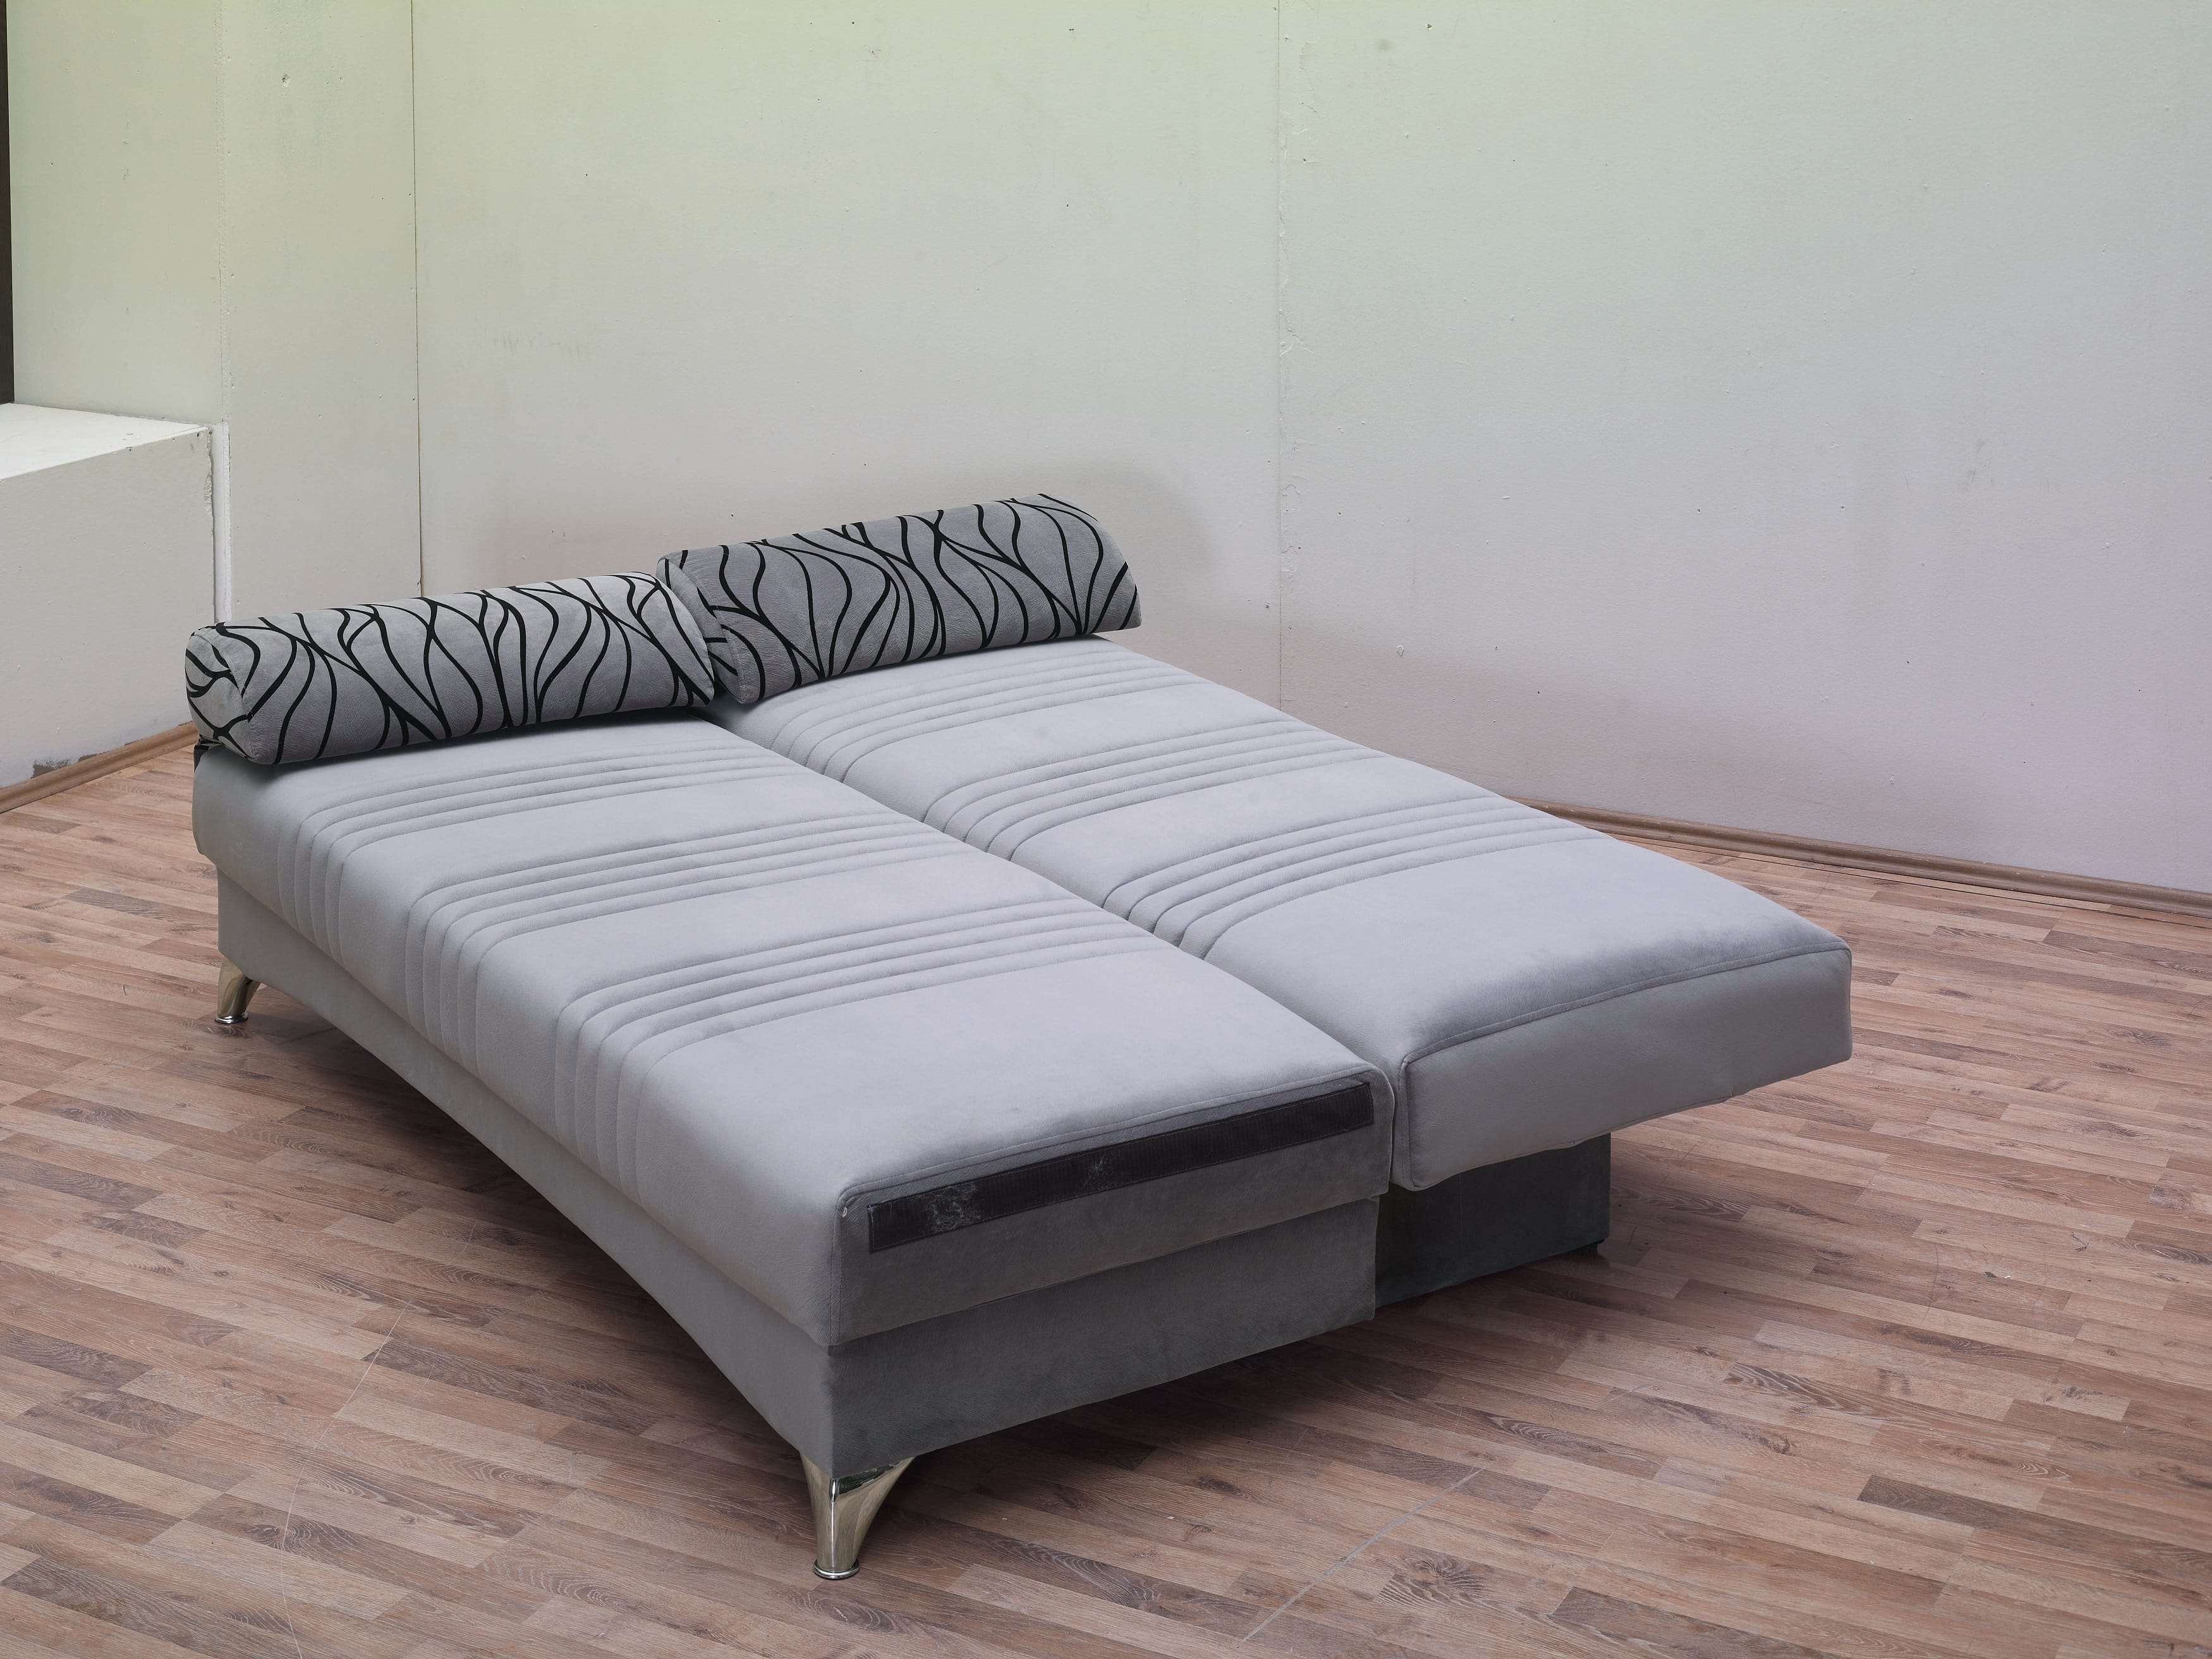 Daisy gray sofa bed by empire furniture usa for Grey divan bed